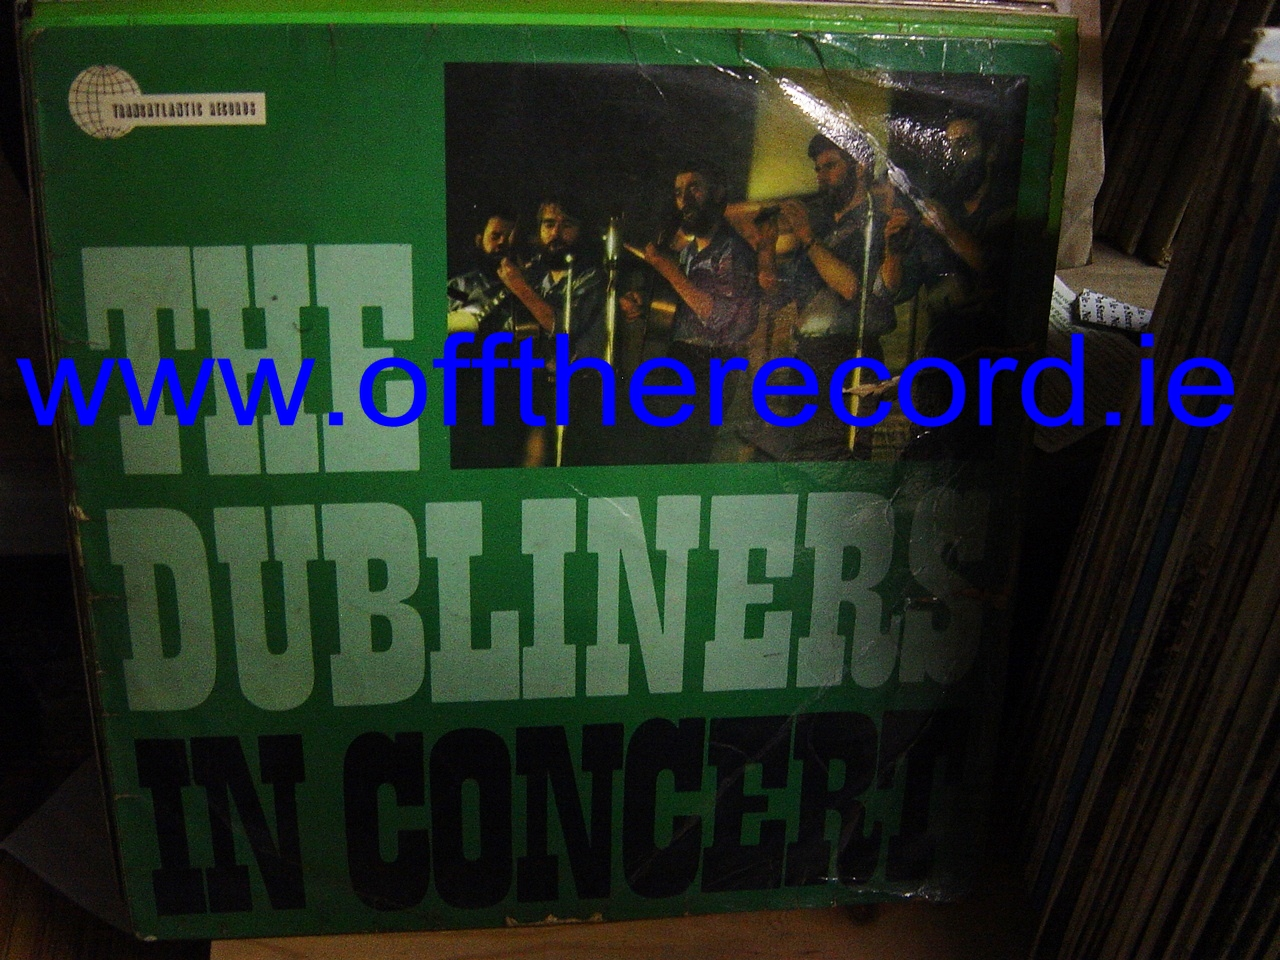 The Dubliners - In Concert - Transatlantic Records 1964